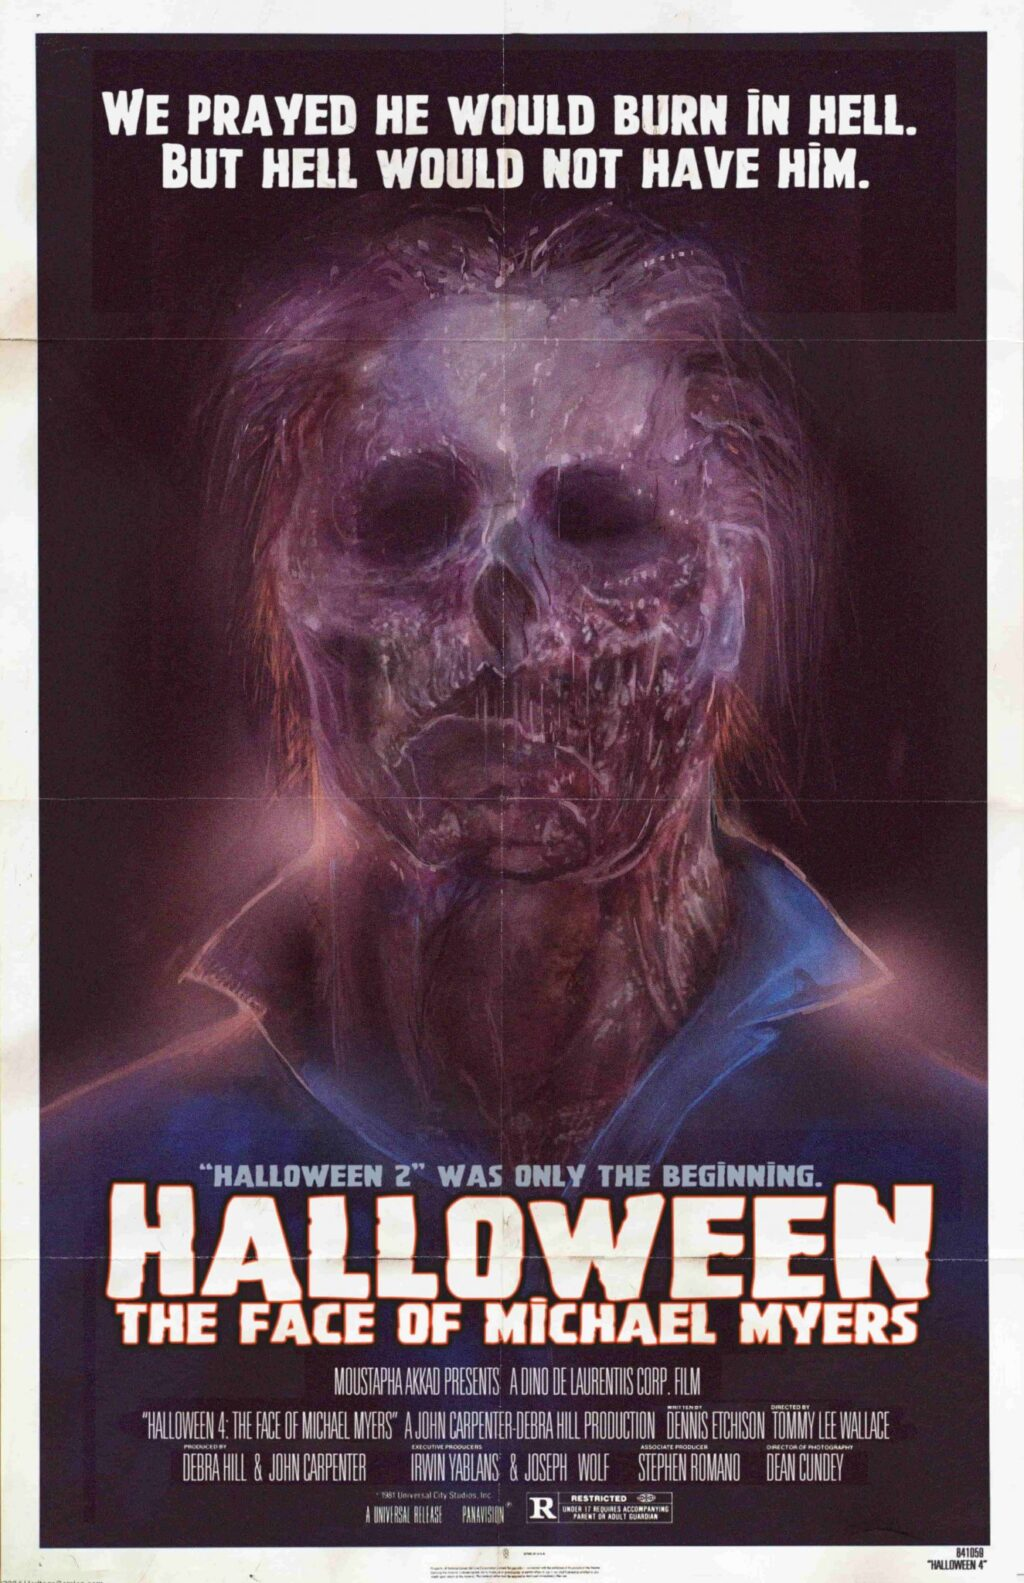 Happy Halloween from the FACE OF MICHAEL MYERS! - Dread Central